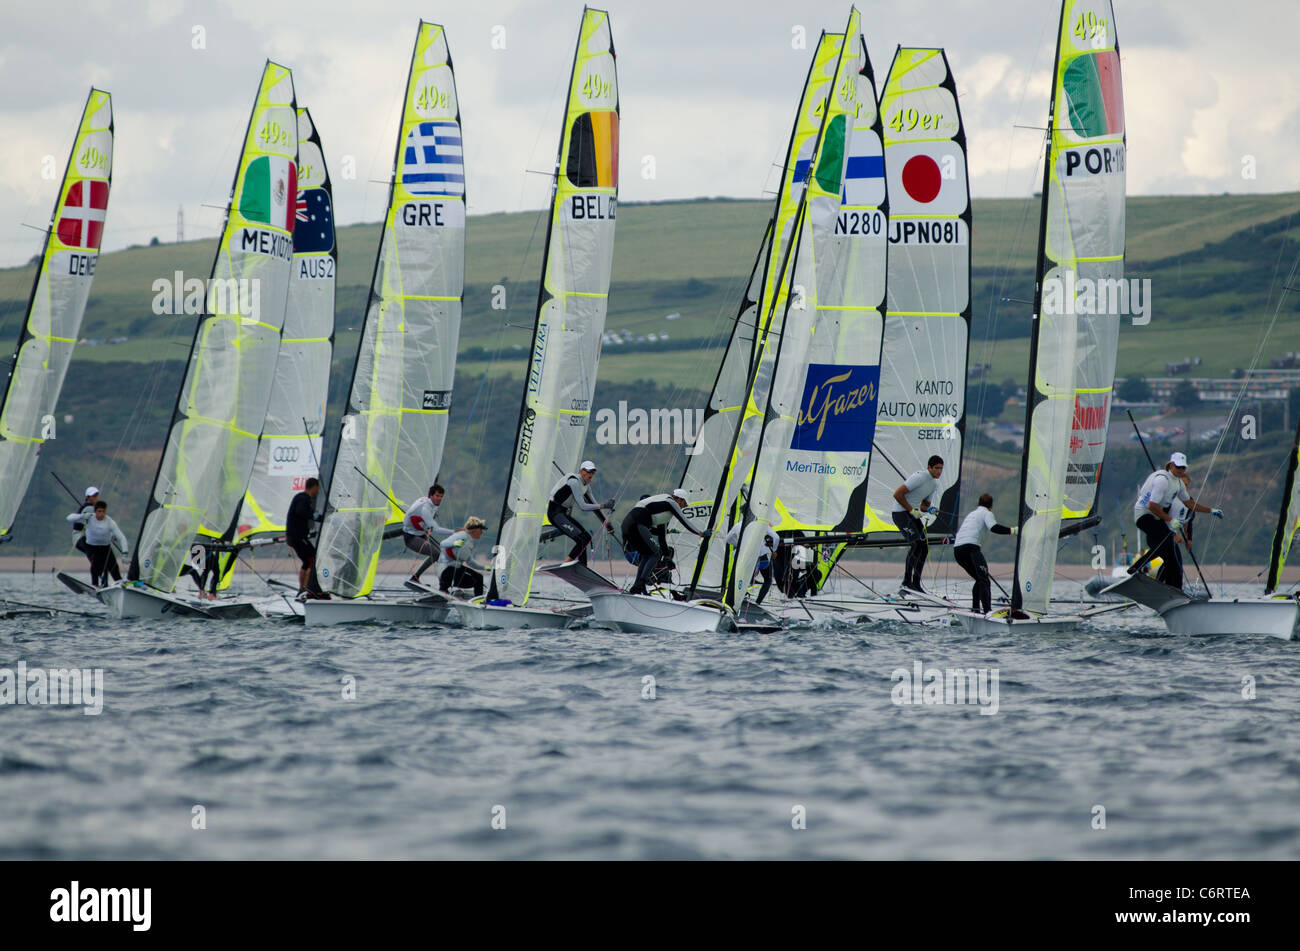 Sailors competing in the  London Olympic 2012 trial regatta in Weymouth and Portland - Stock Image